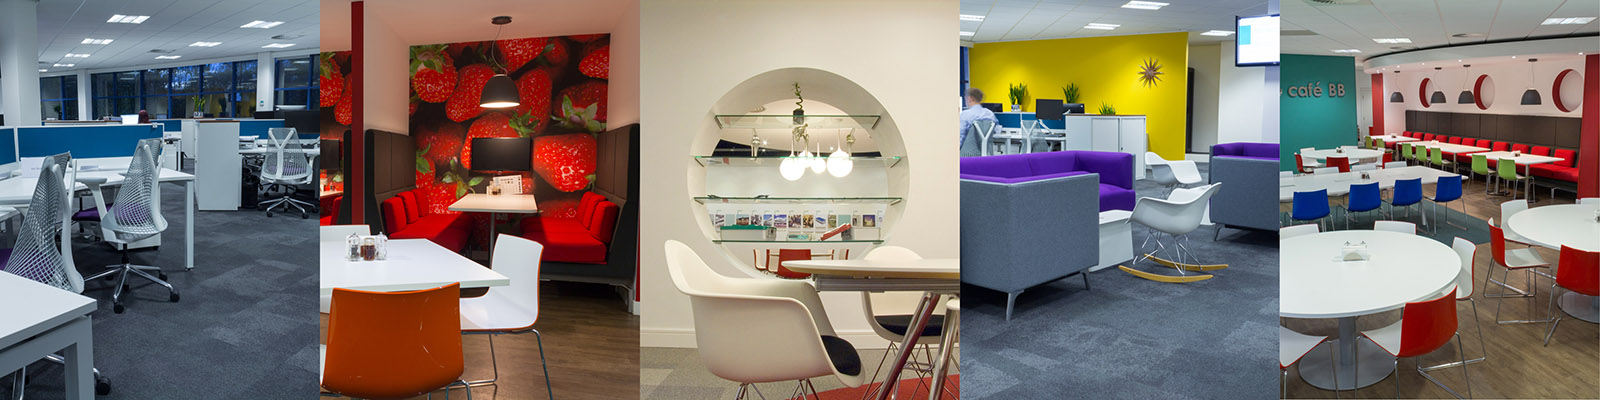 BBraun Medical – a 5 year story | Corporate Workspace